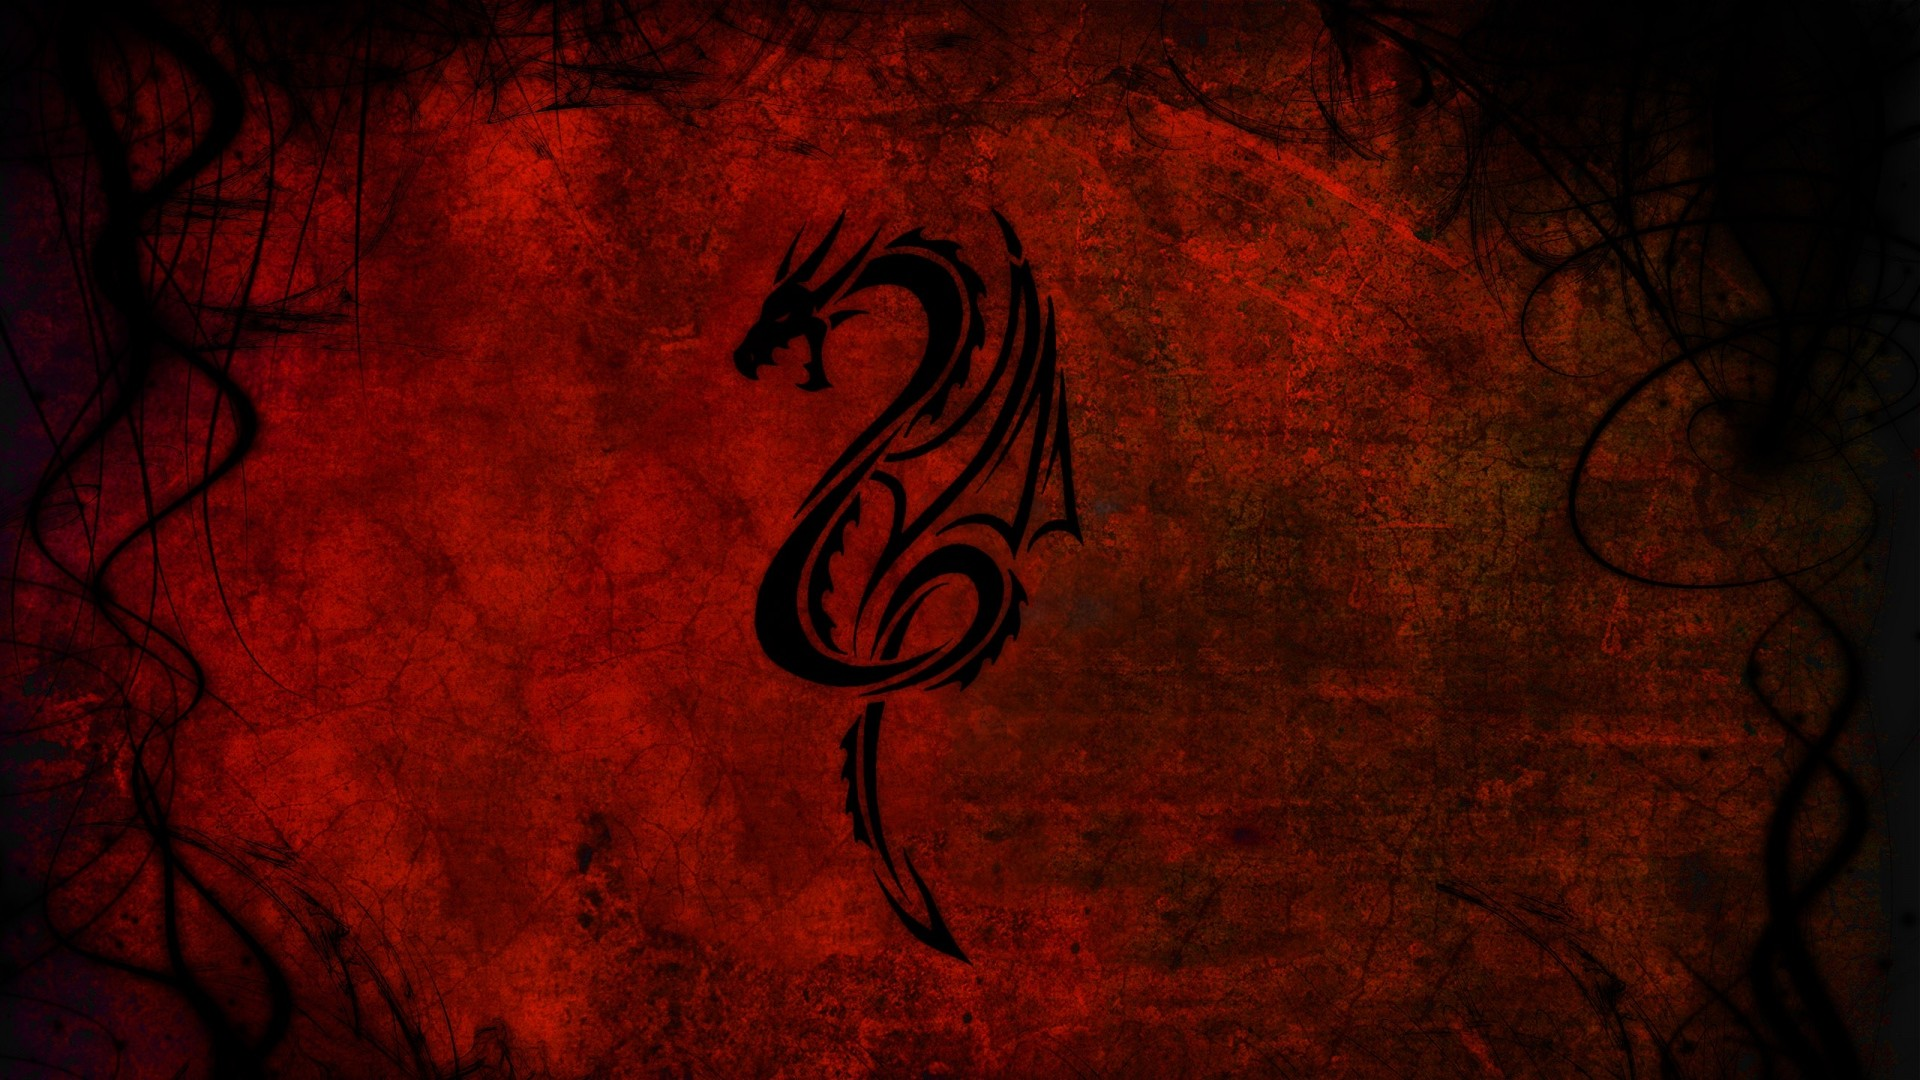 Red Dragon Wallpaper 67 Images